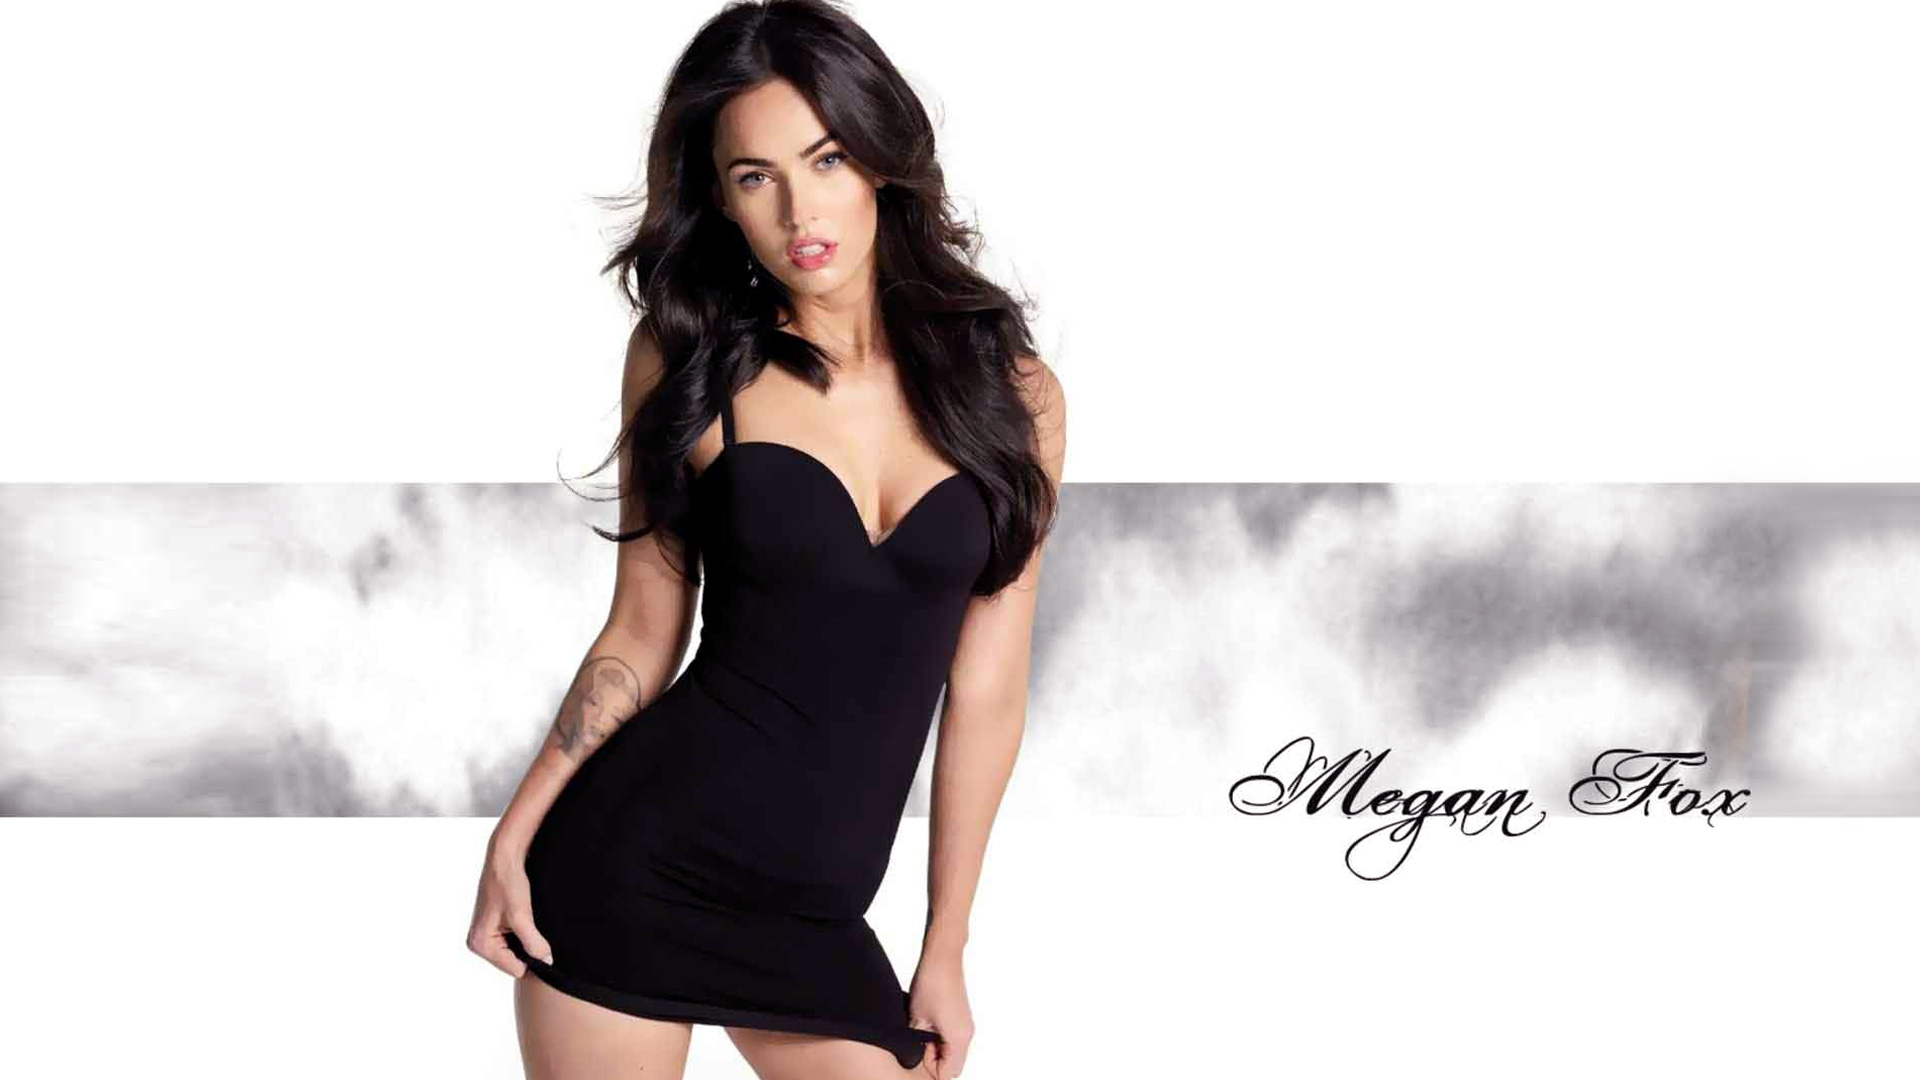 Megan Fox Wallpapers Download Wallpapercraft 1920x1080